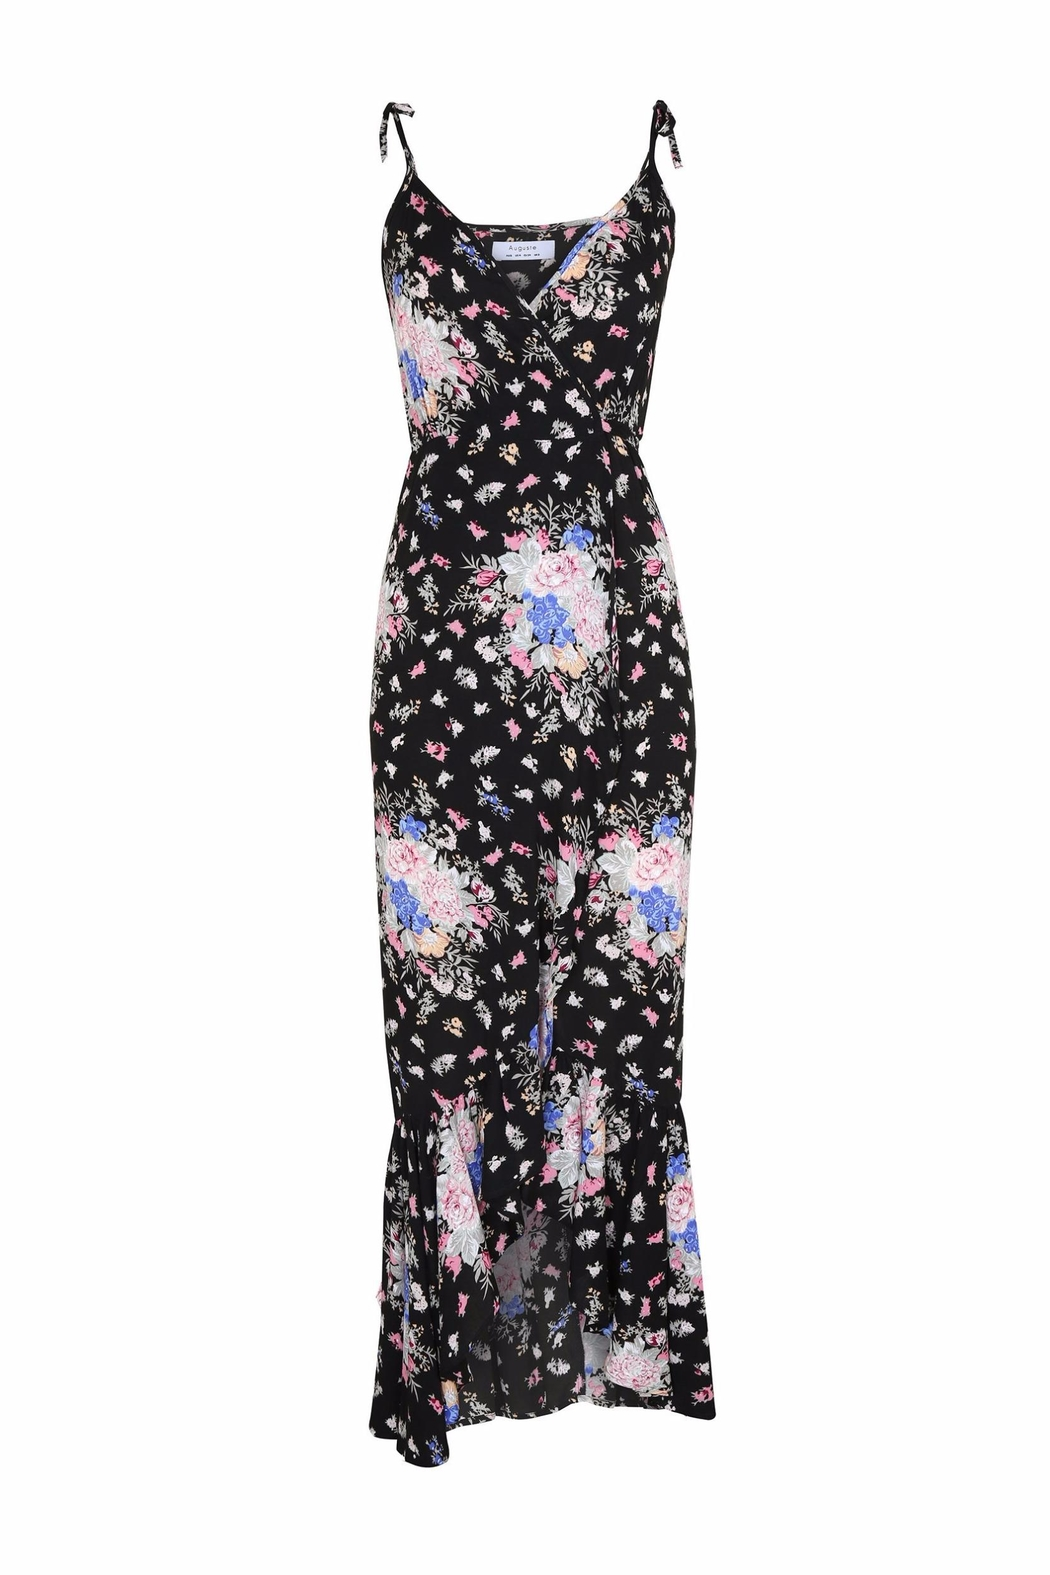 Auguste The Label  Dark Floral Dress - Main Image